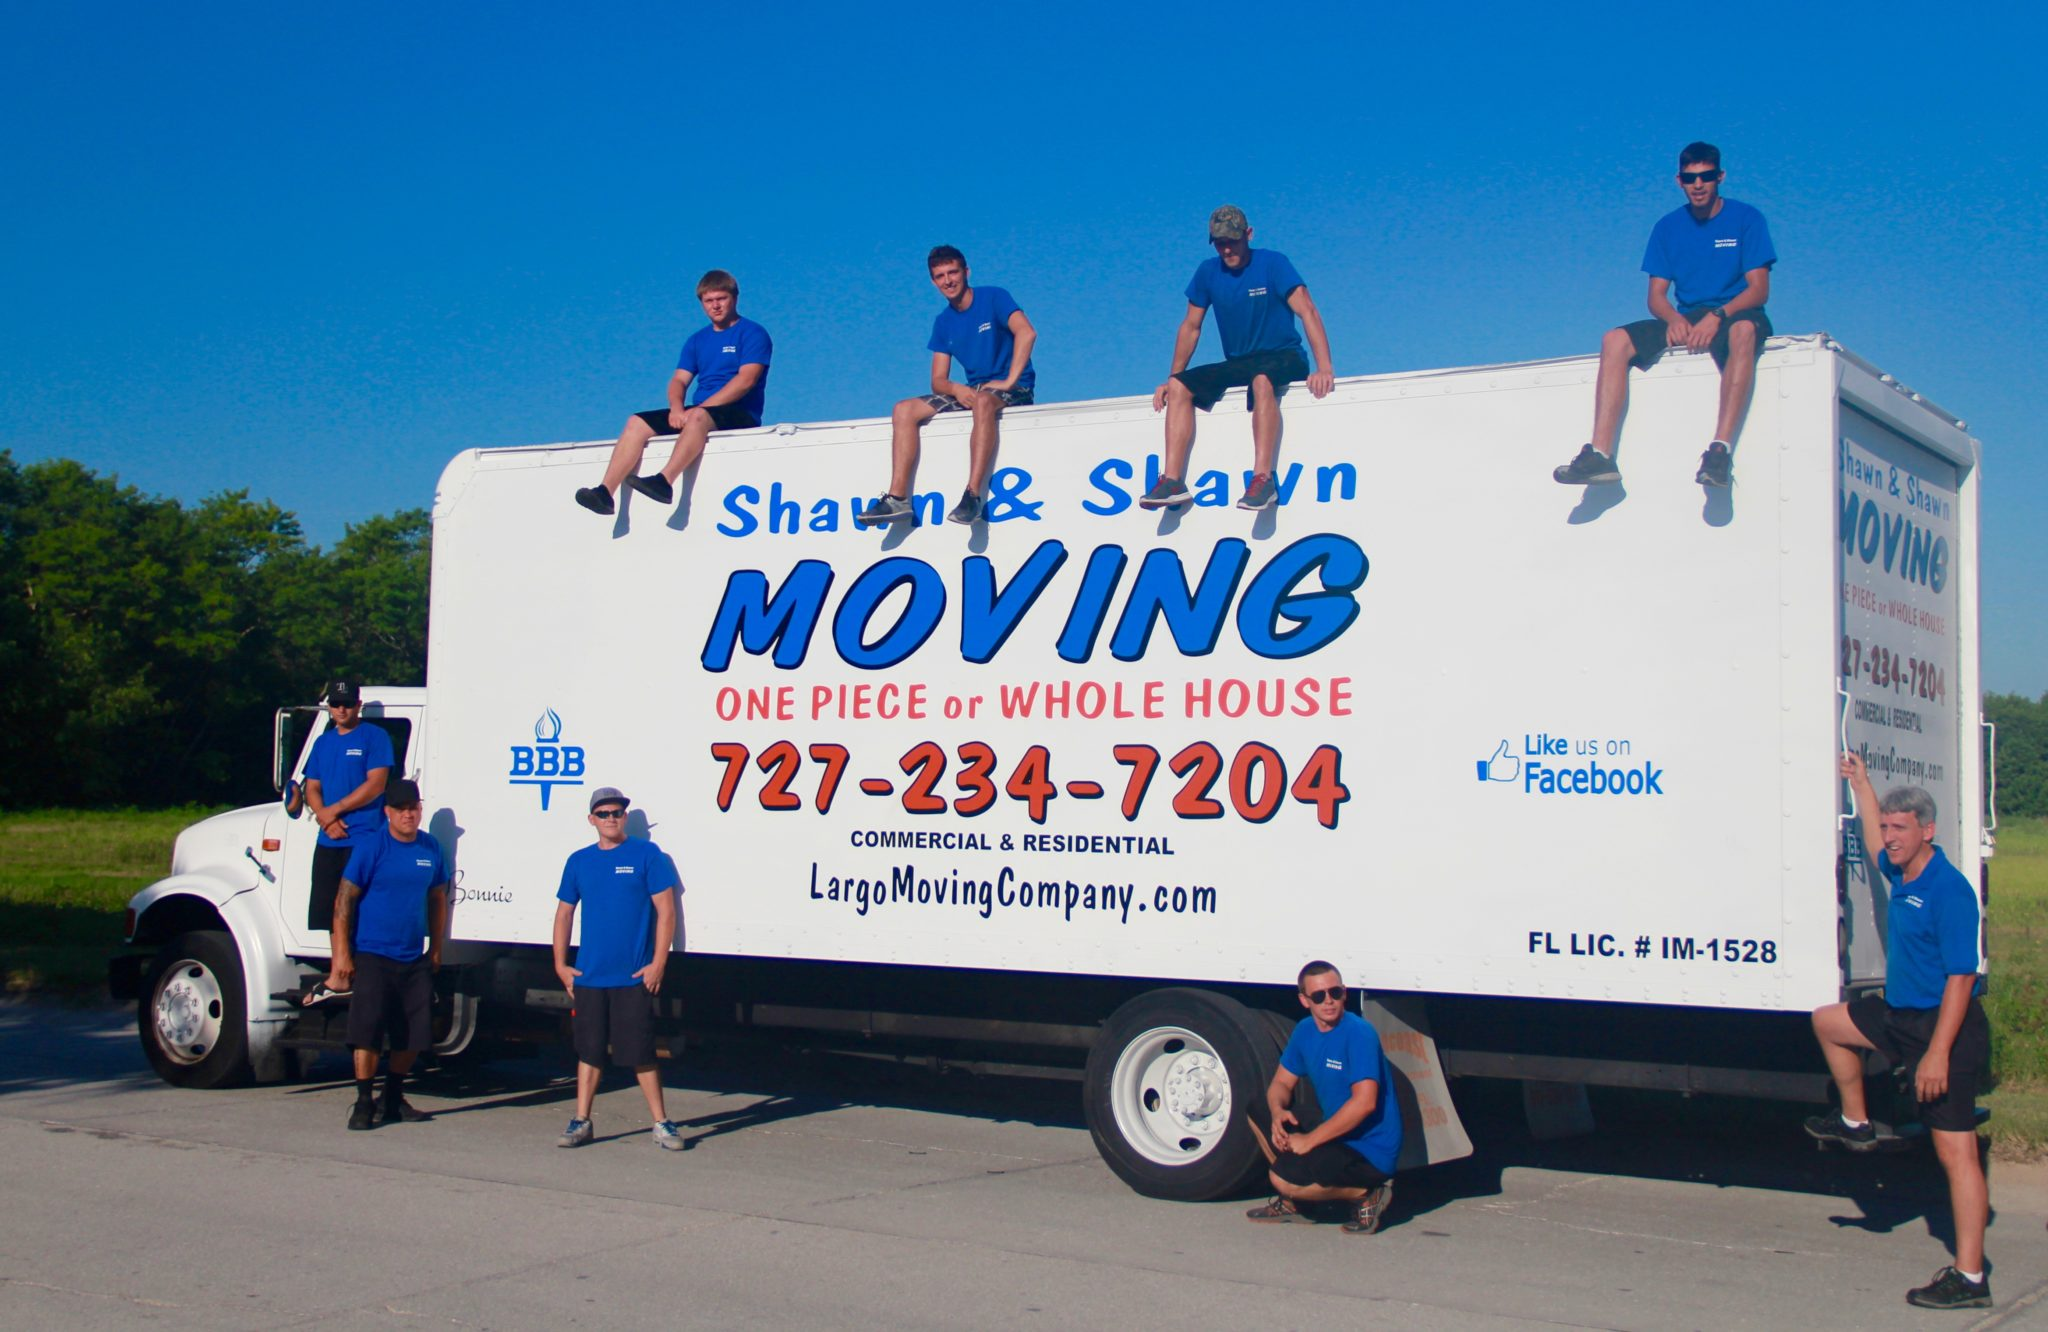 Kenneth City Movers | Shawn & Shawn Moving Company | Largo, Florida